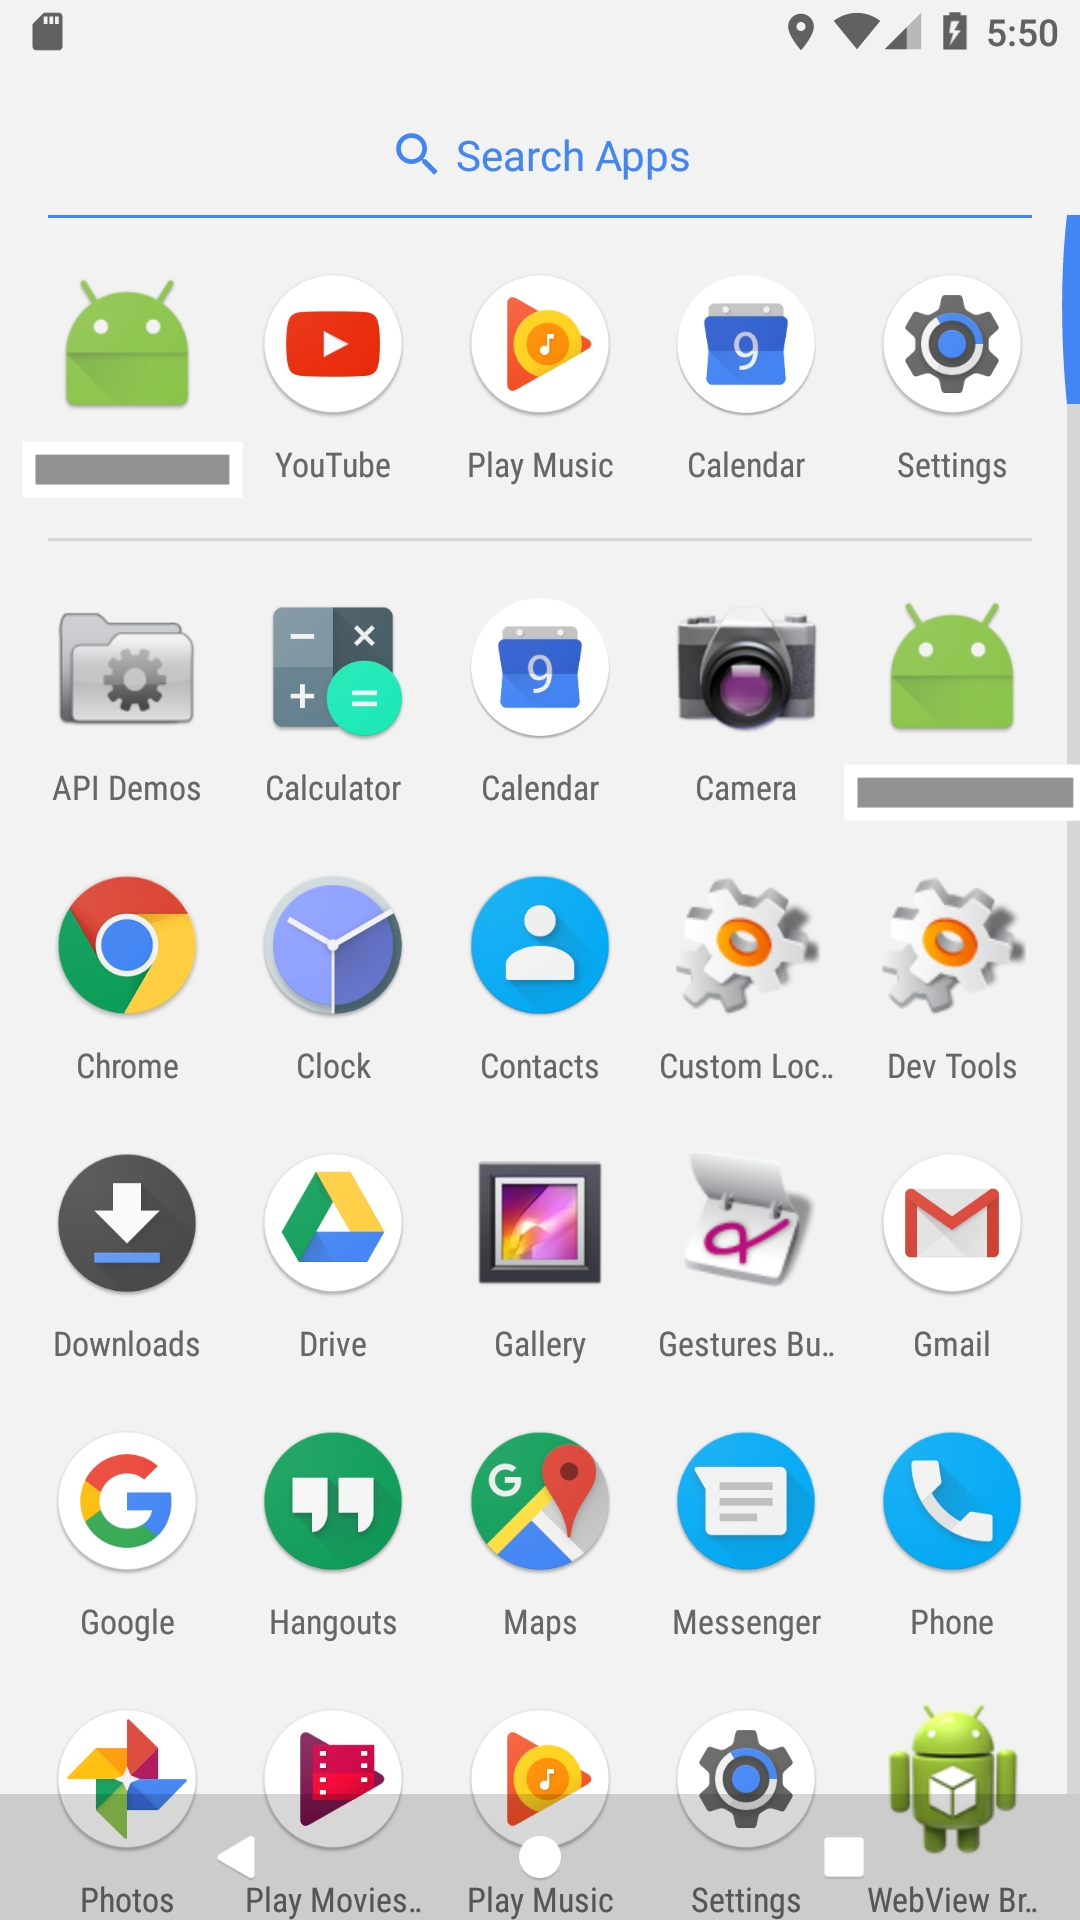 App Icon Launcher Not Showing In Android 7.1.1 - Stack Overflow_Calendar Icon Not Working